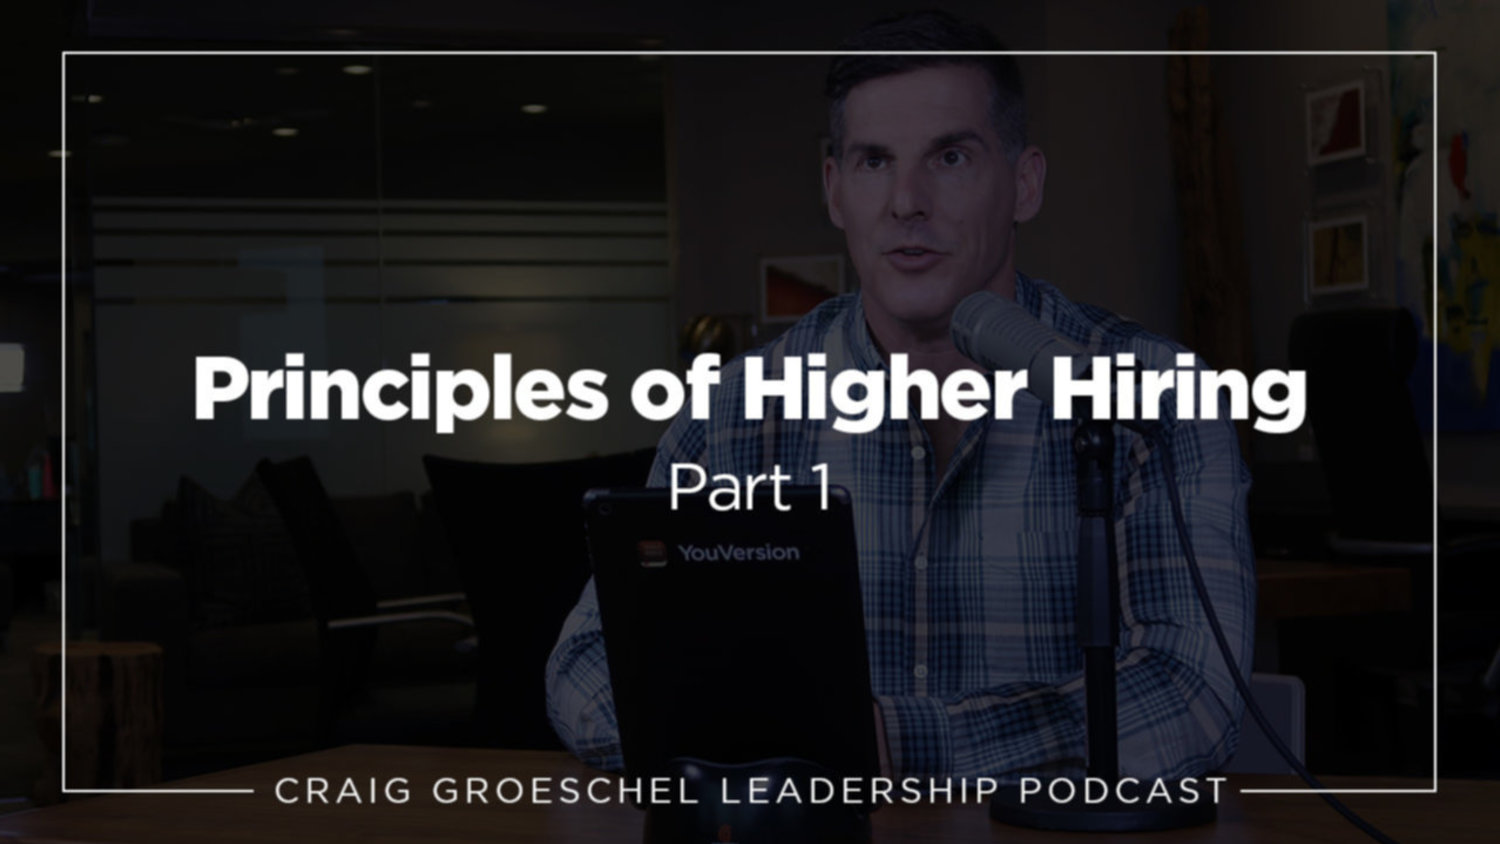 Principles of Higher Hiring, Part 1